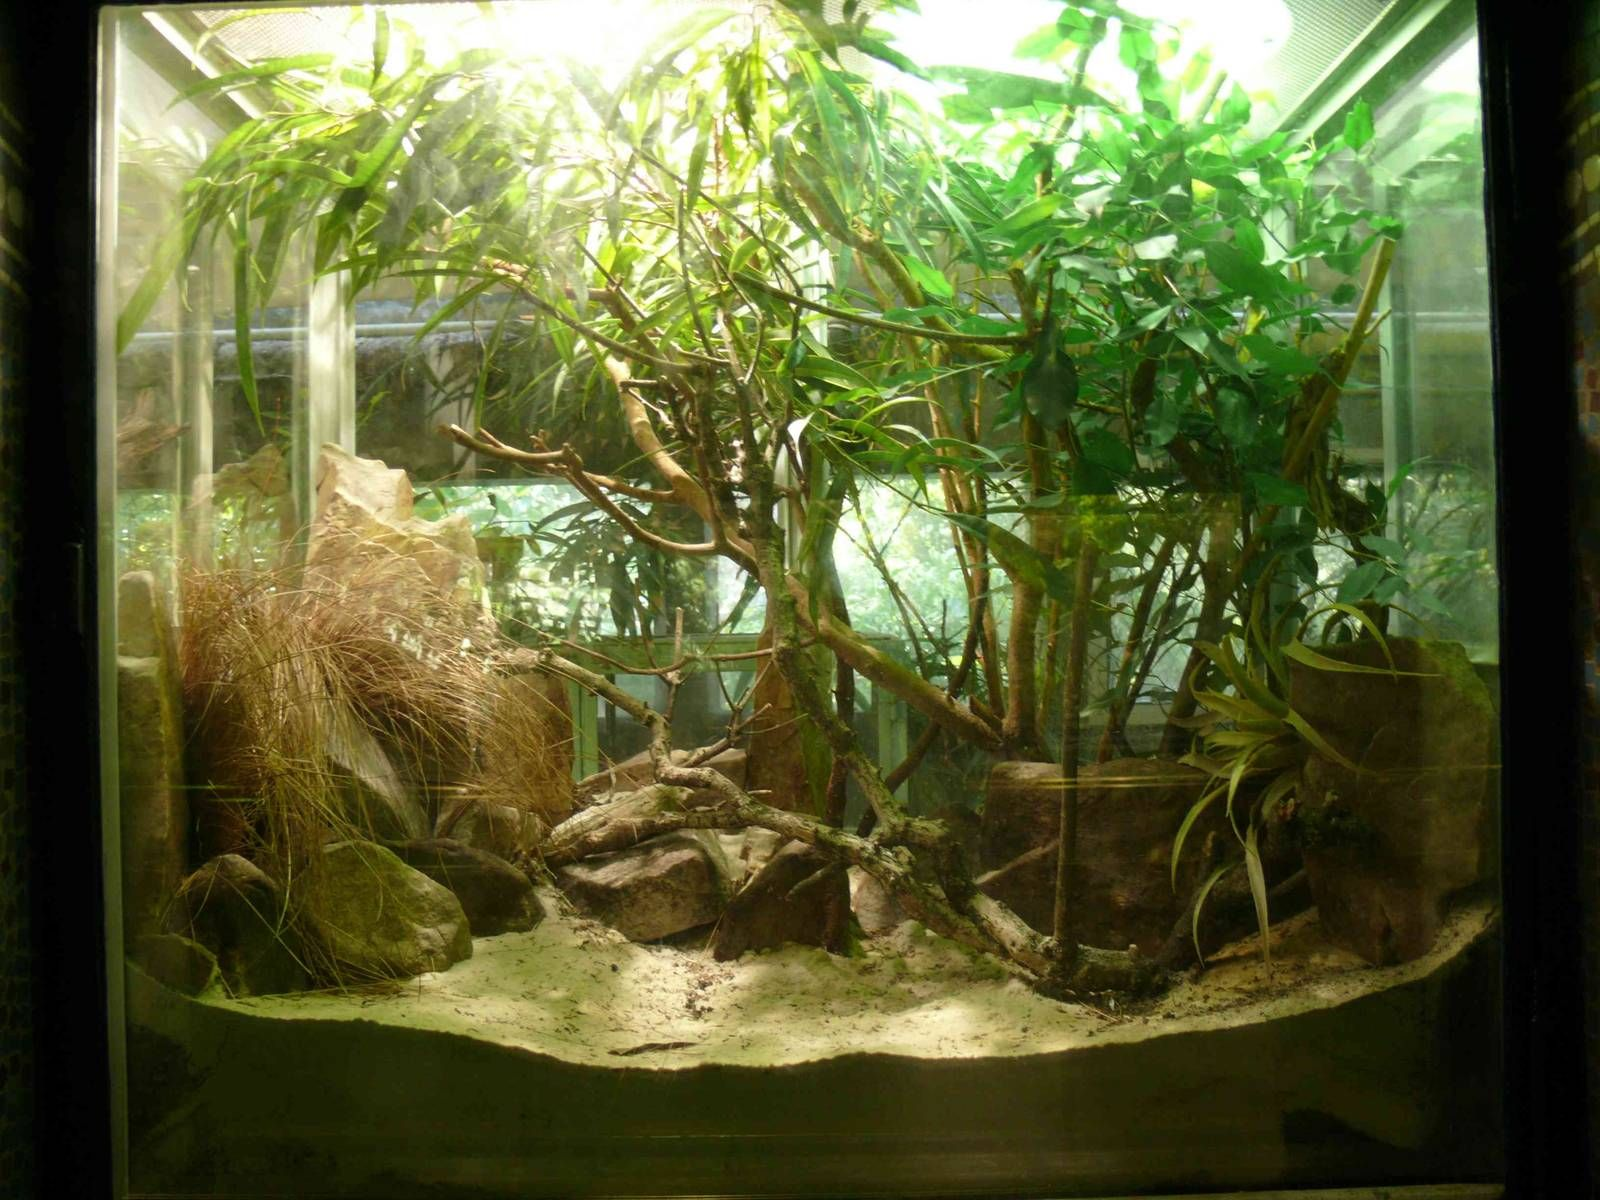 Terrarium common chameleon terrarium inside the vivarium jardin